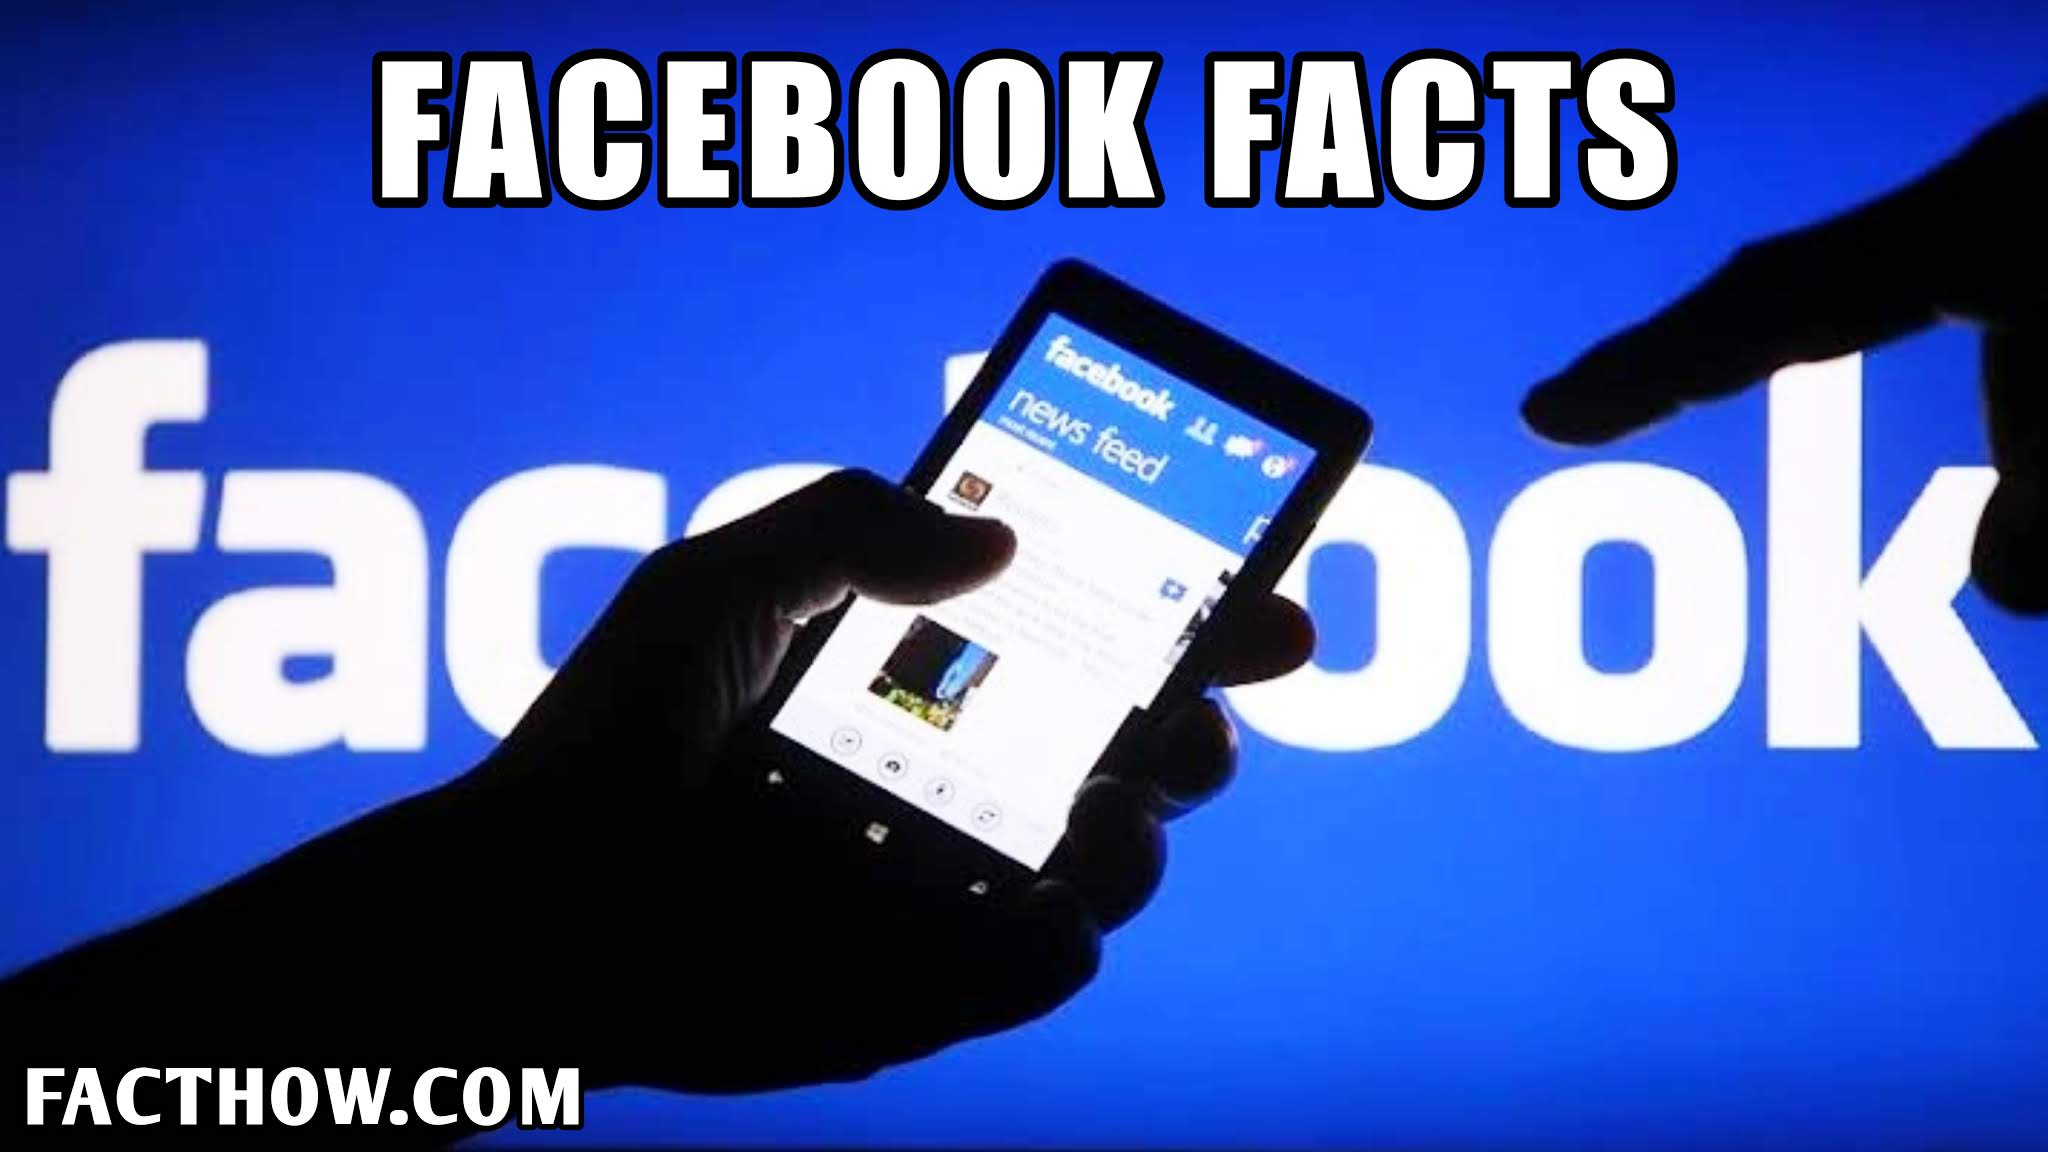 facebook-100-fun-facts-facebook-monetisation-markjuckerberg-fact-how-facthow-facebook-majedaar-rochak-tathya-hindi-facebook-facts-amazing-interesting-facts-about-facebook-rochak-tathya-100-rochak-jaankari-facebook-mark-juckerberg-facebook-ads